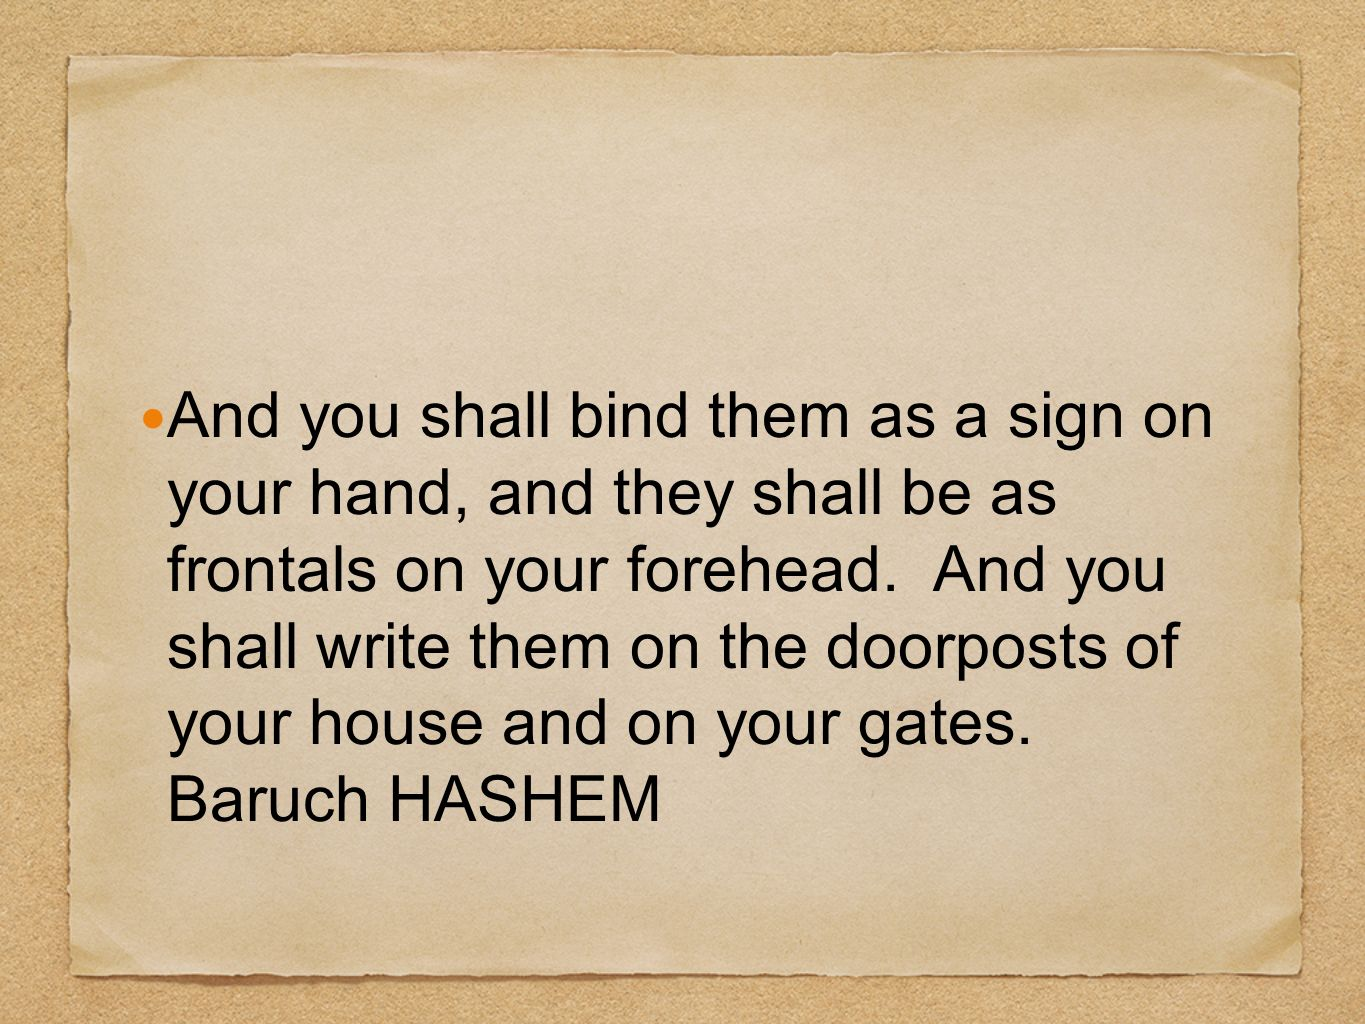 And you shall bind them as a sign on your hand, and they shall be as frontals on your forehead.